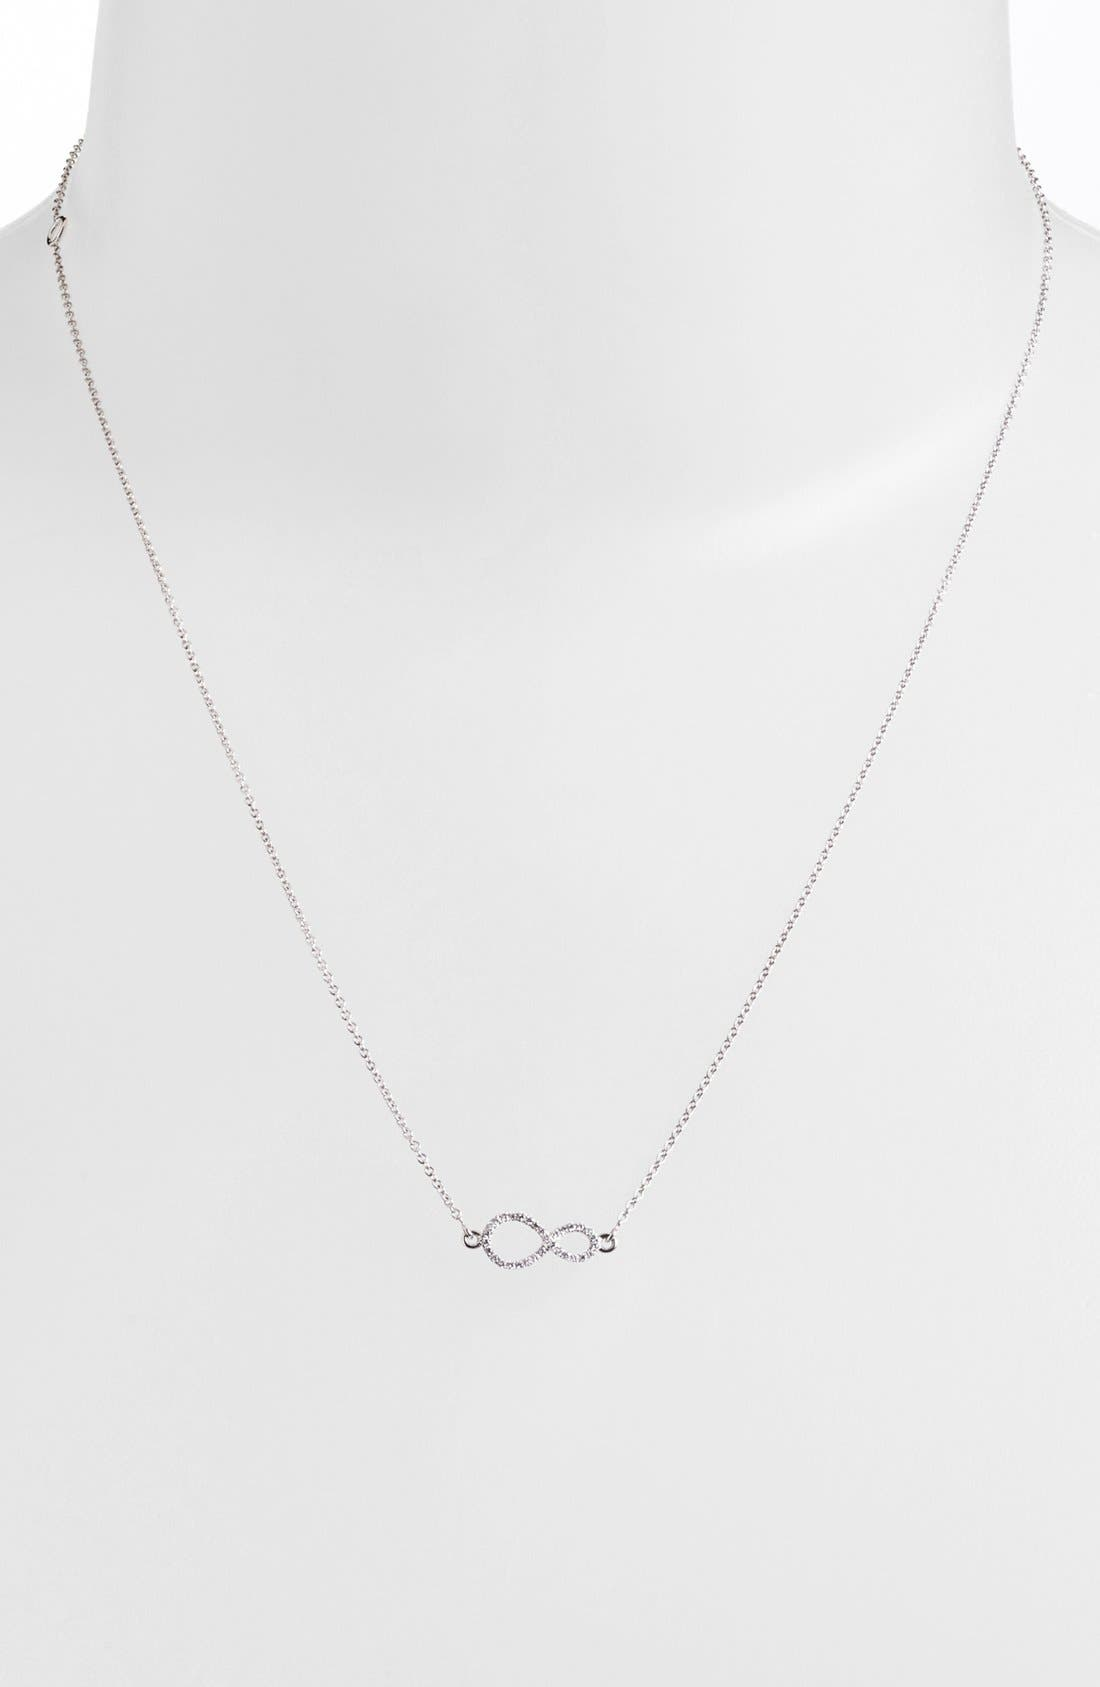 Alternate Image 2  - Bony Levy Pavé Diamond Sideways Infinity Symbol Pendant Necklace (Nordstrom Exclusive)